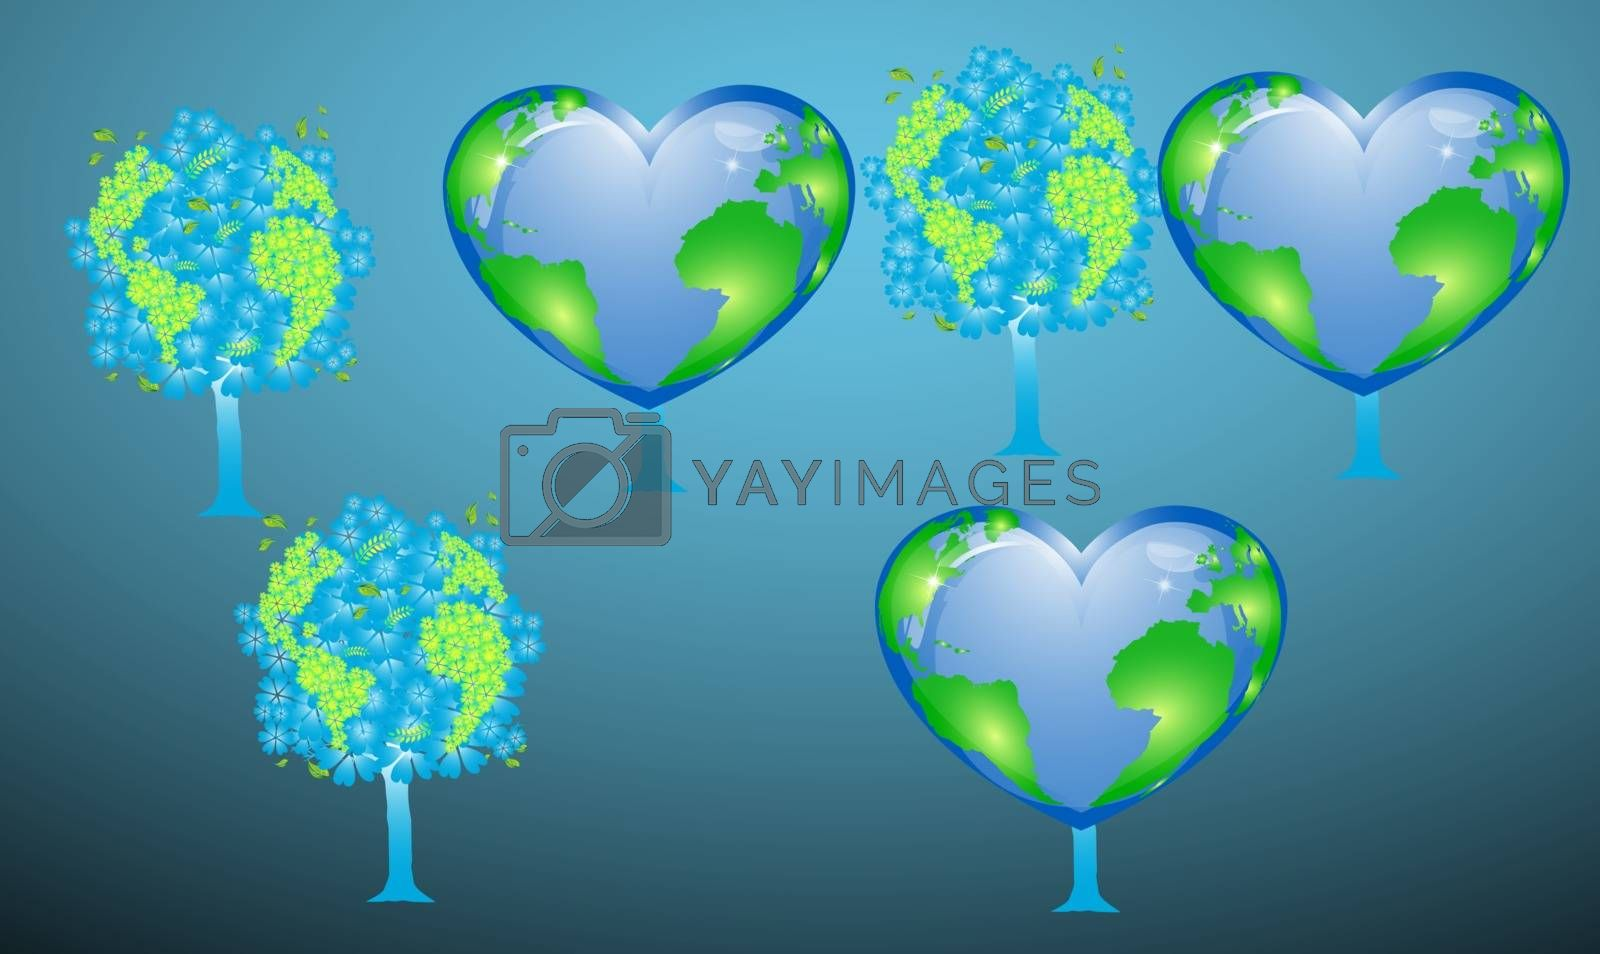 digital textile design of tree and globe on abstract background